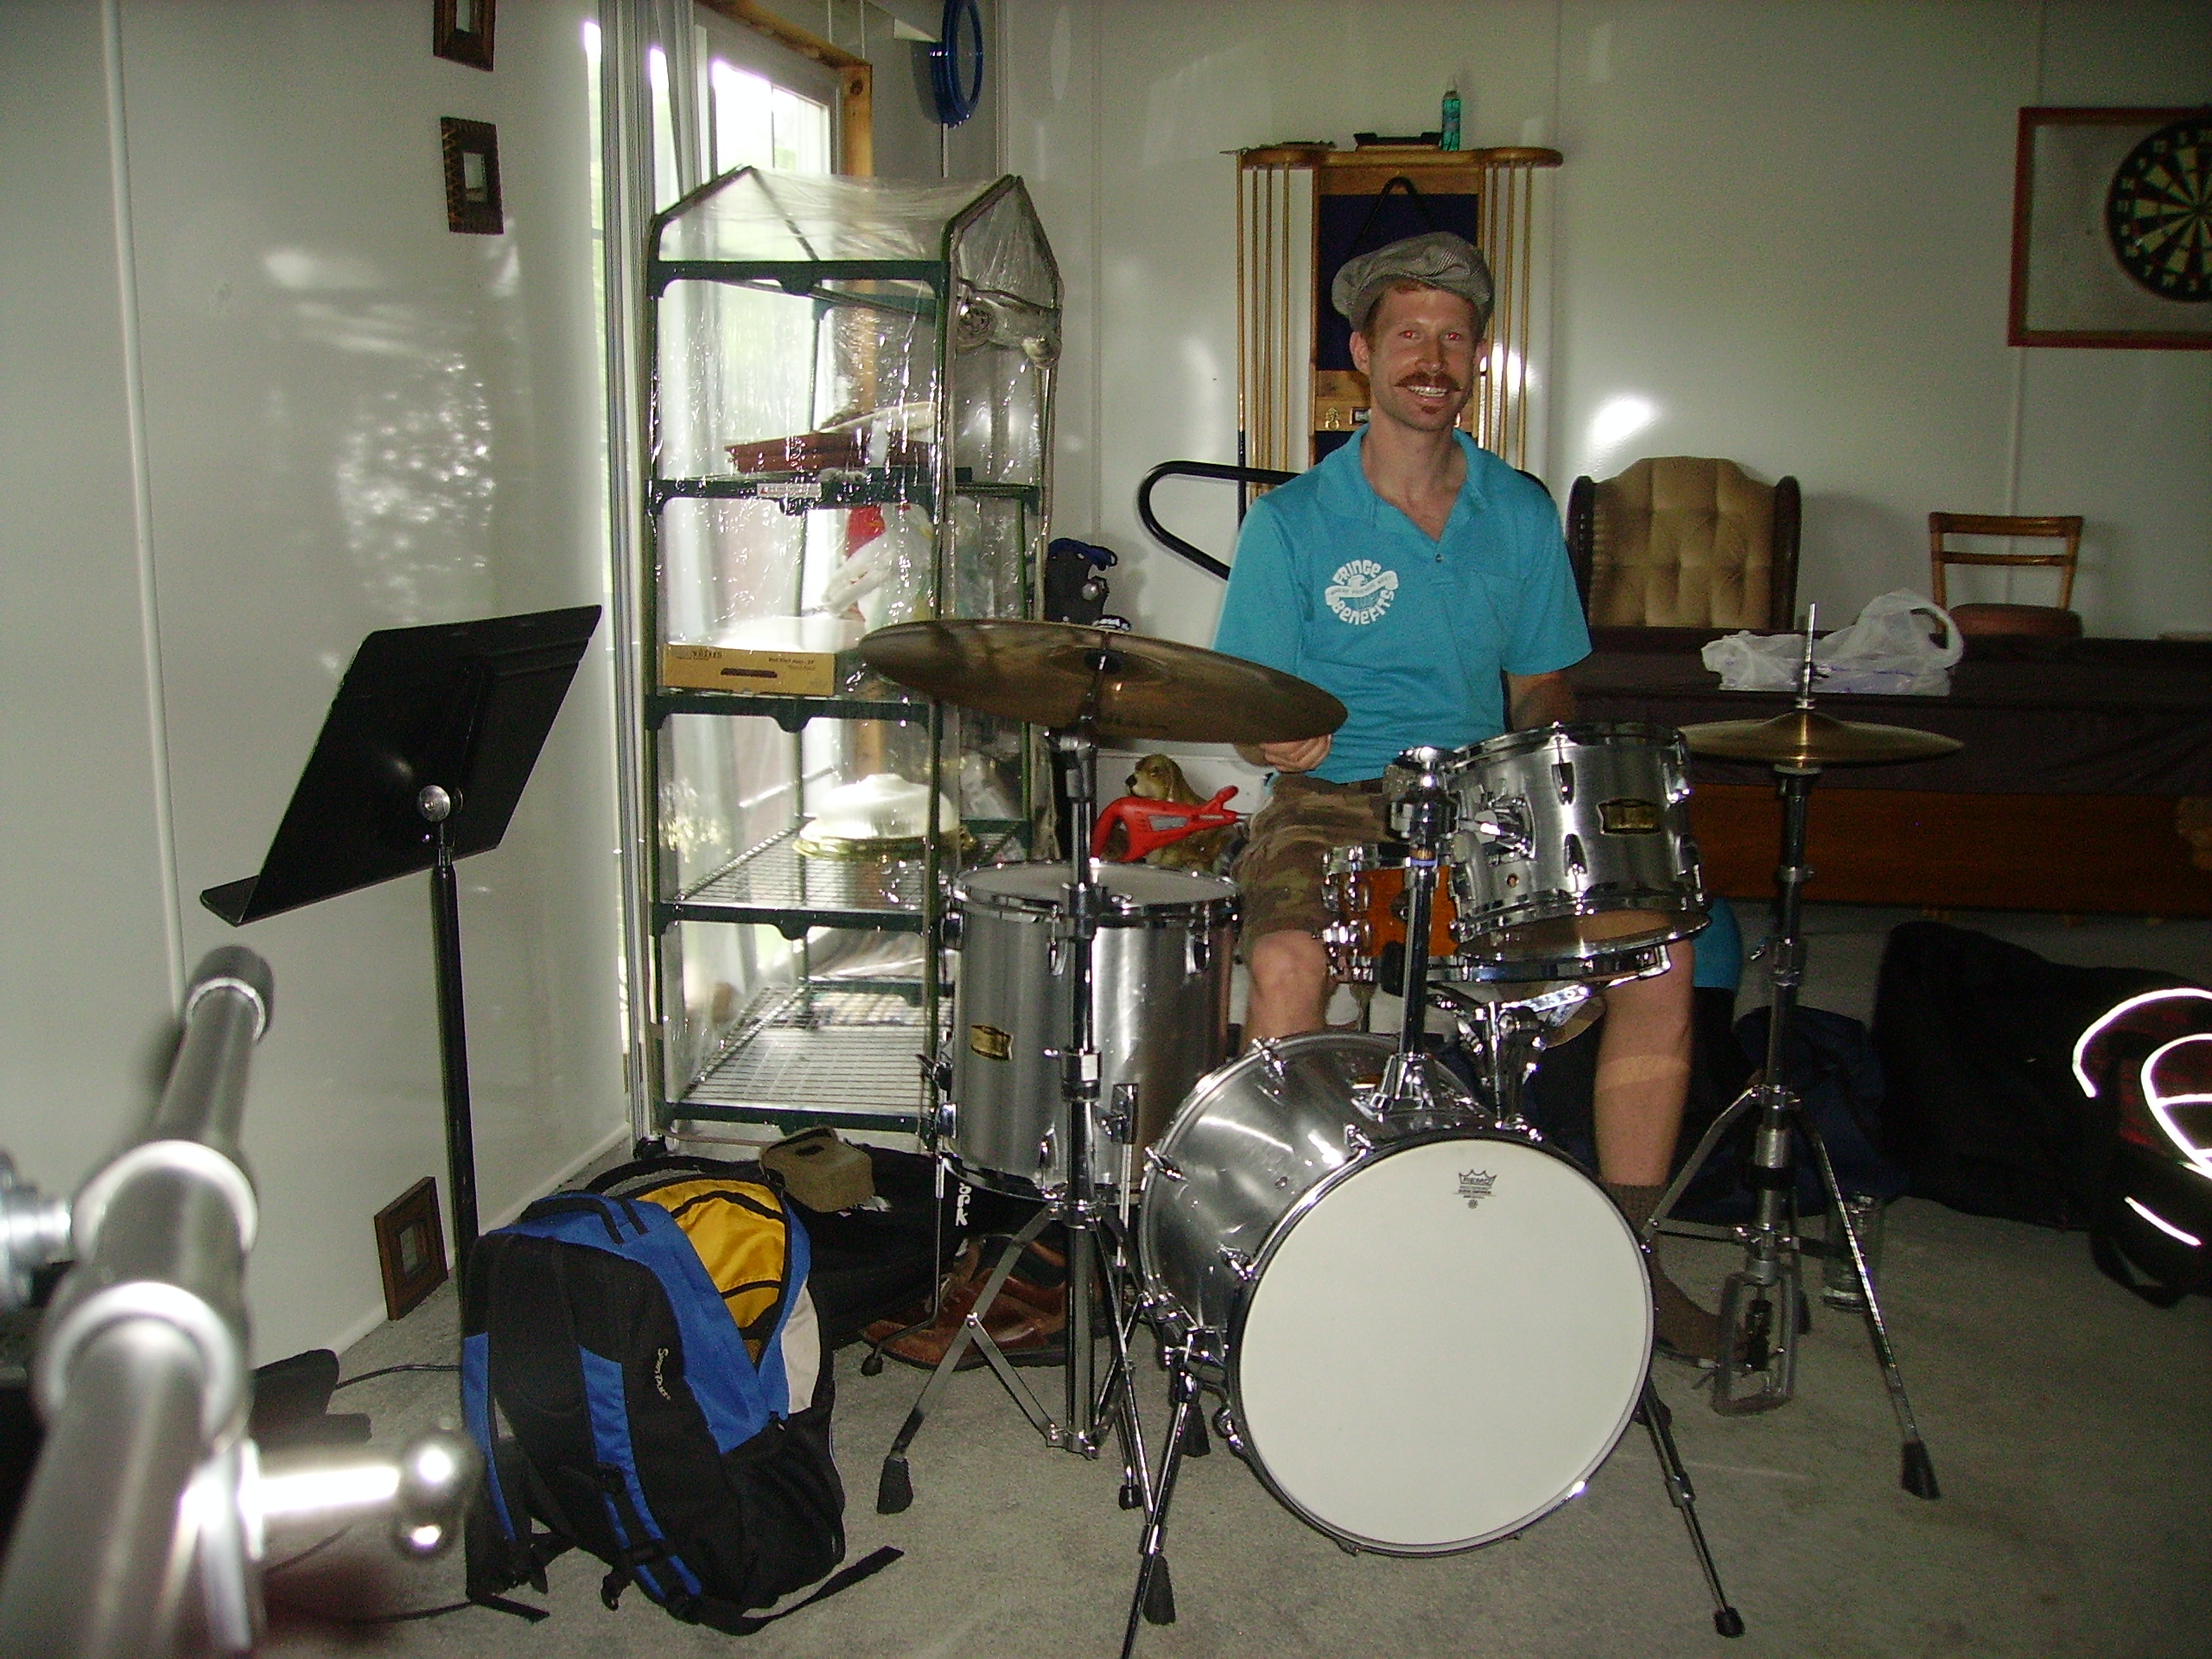 Tim at the Drums!